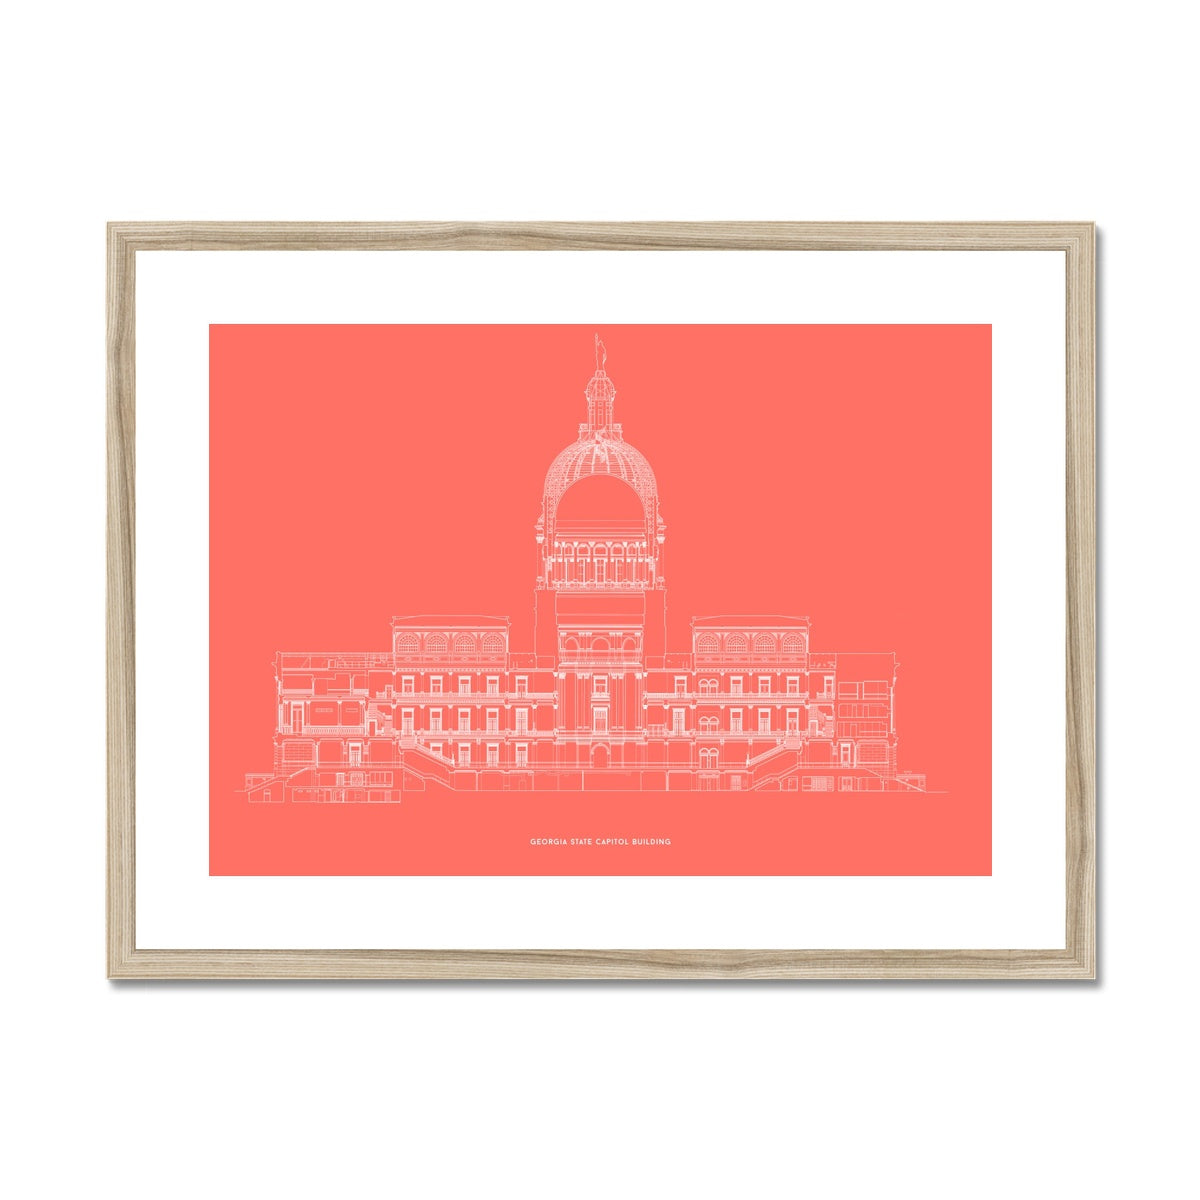 The Georgia State Capitol Building - West Elevation Cross Section - Red -  Framed & Mounted Print